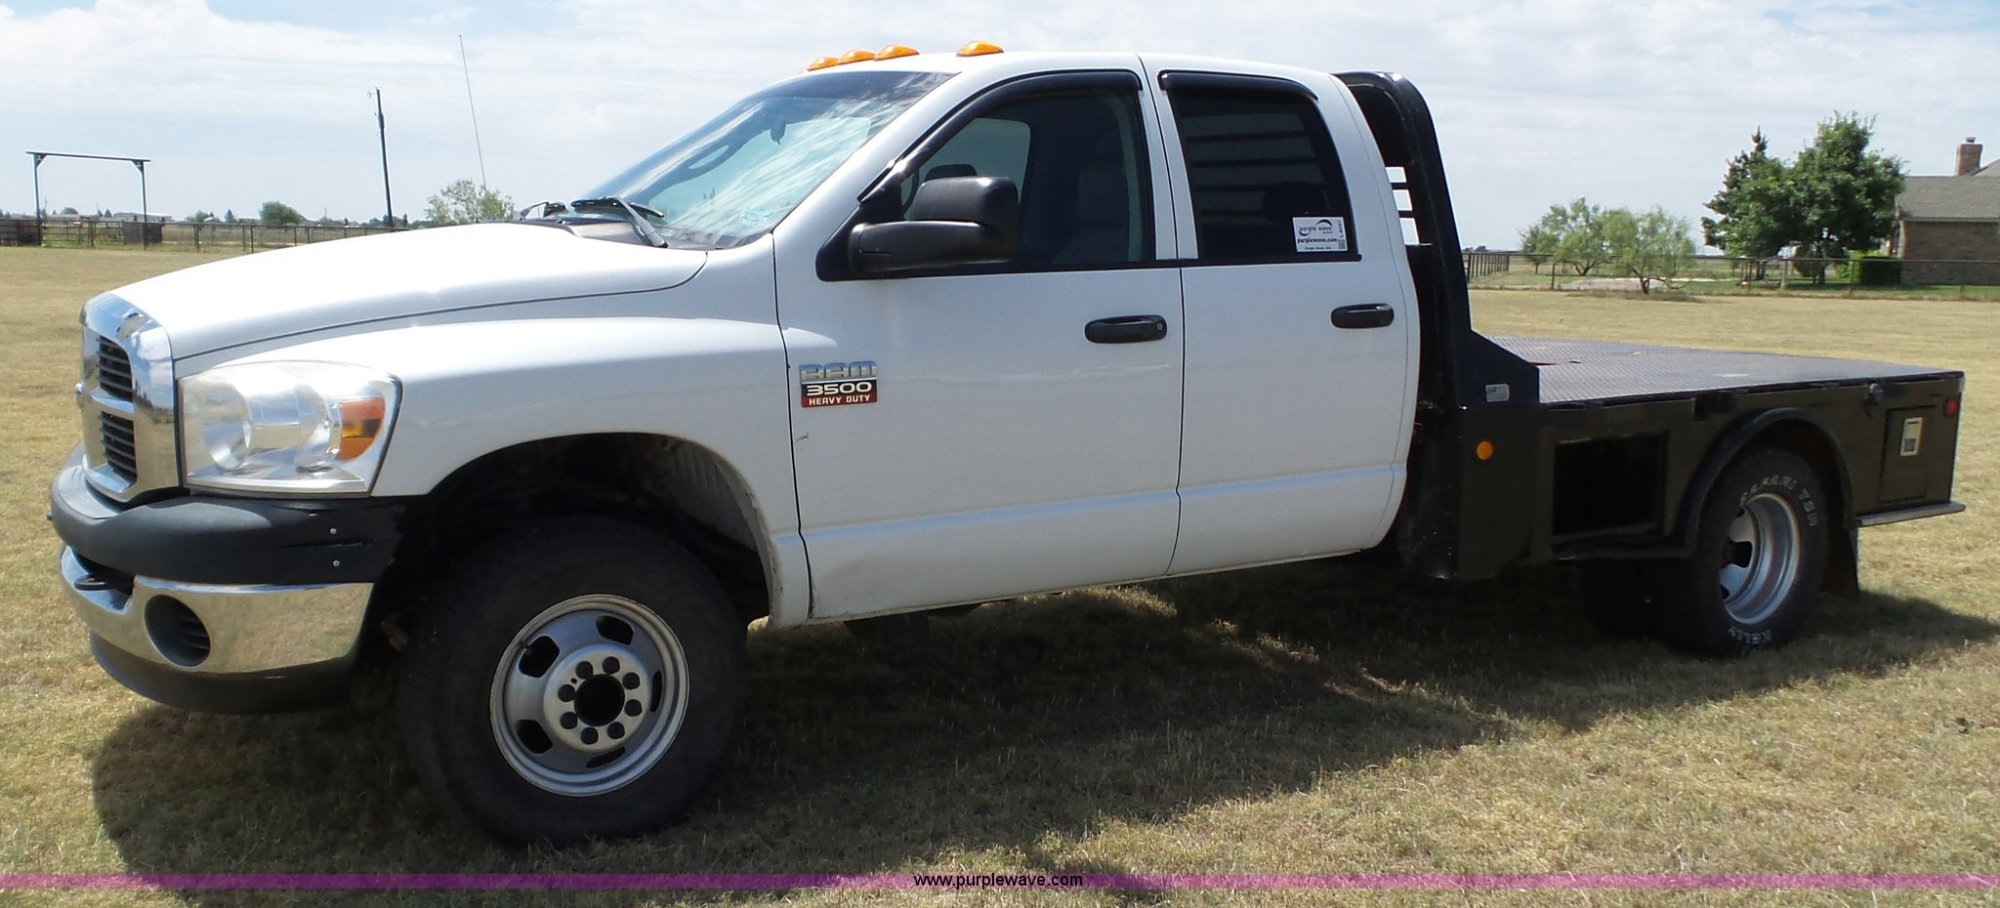 hight resolution of l6597 image for item l6597 2009 dodge ram 2500 quad cab